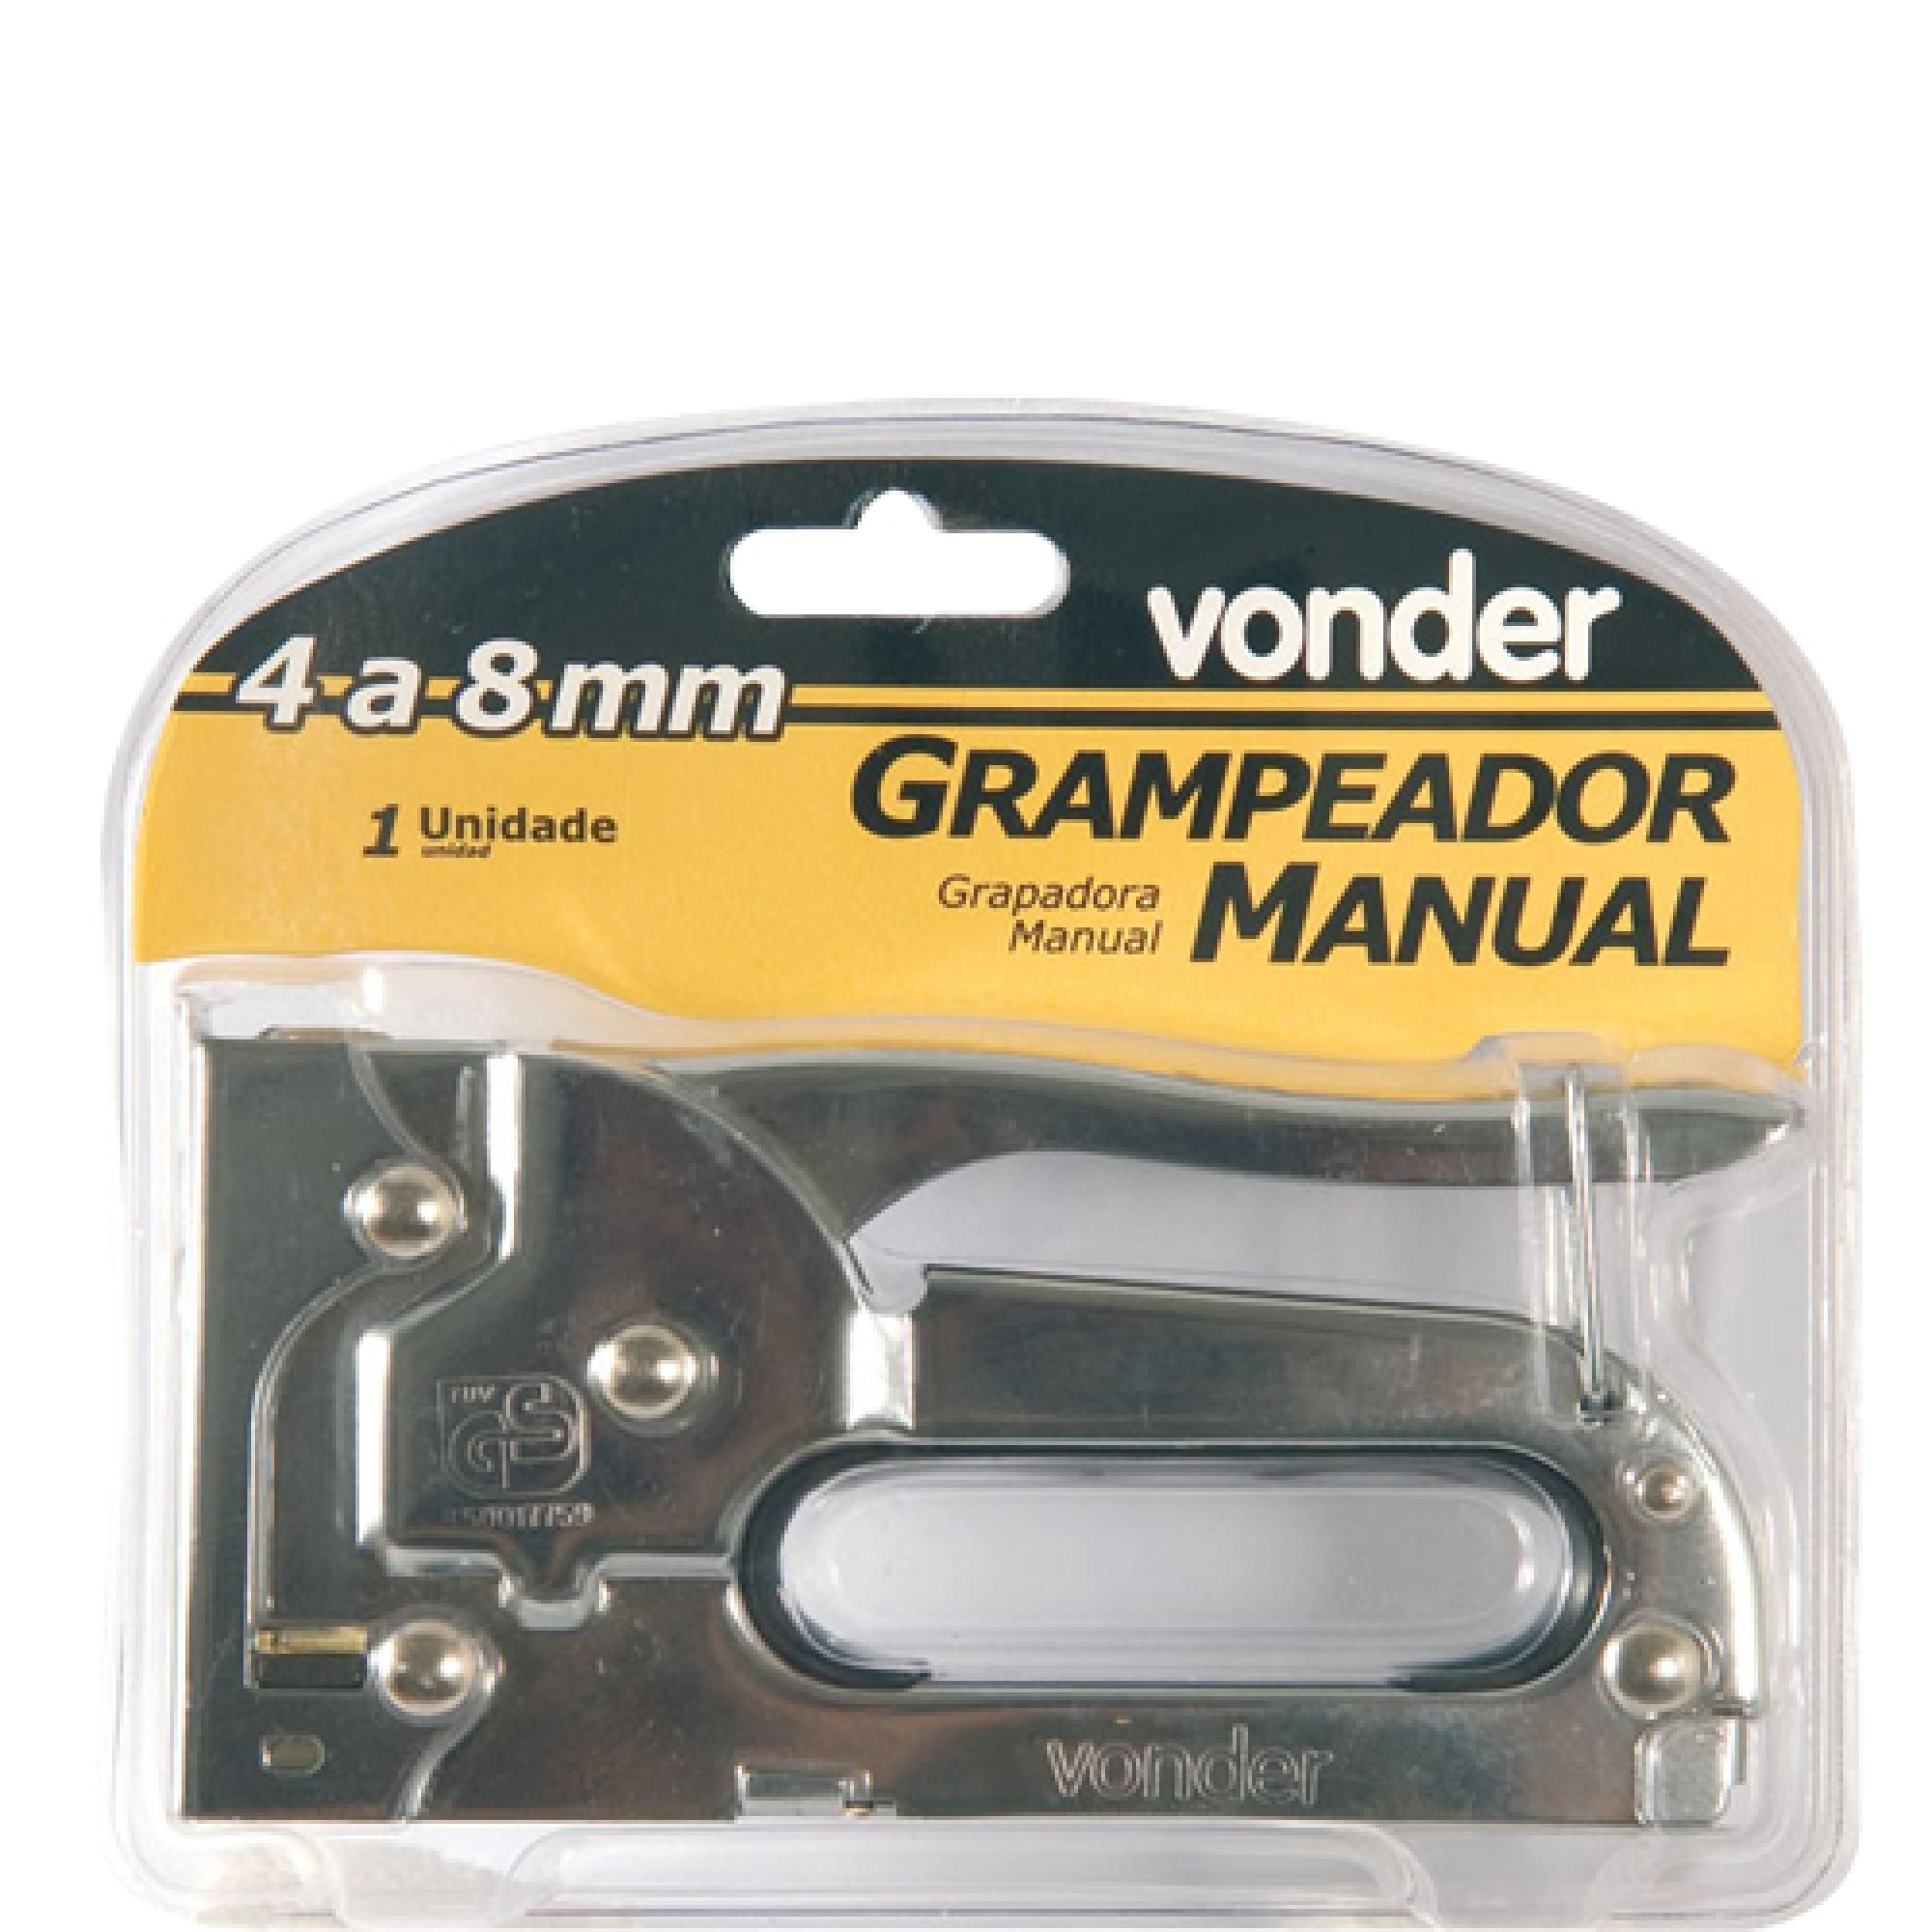 5217 - GRAMPEADOR MANUAL VONDER